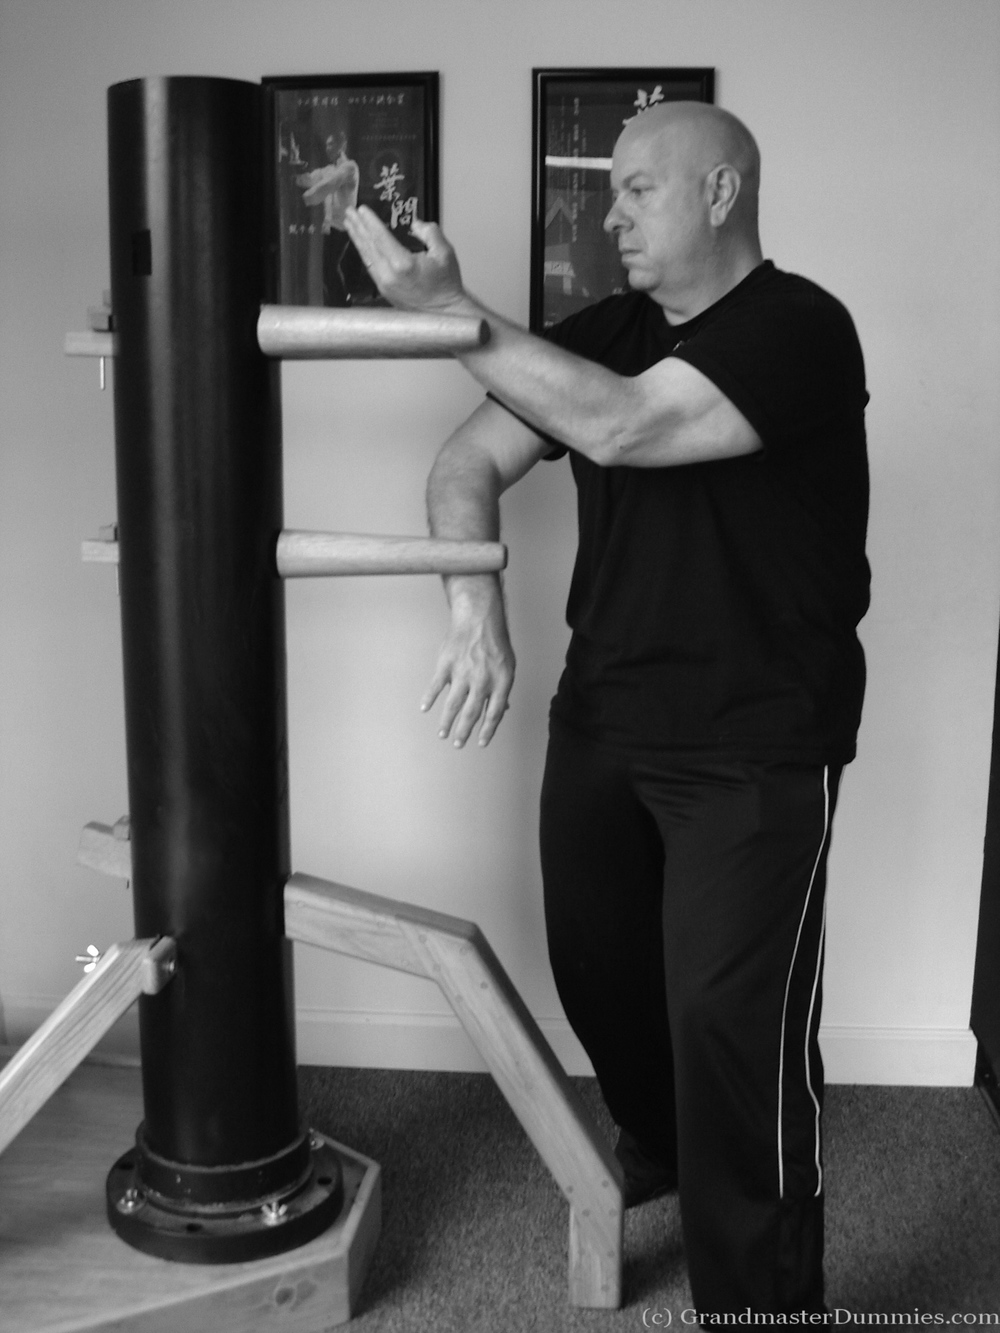 Sifu Tony Massengill trains with a Grandmaster Dummy